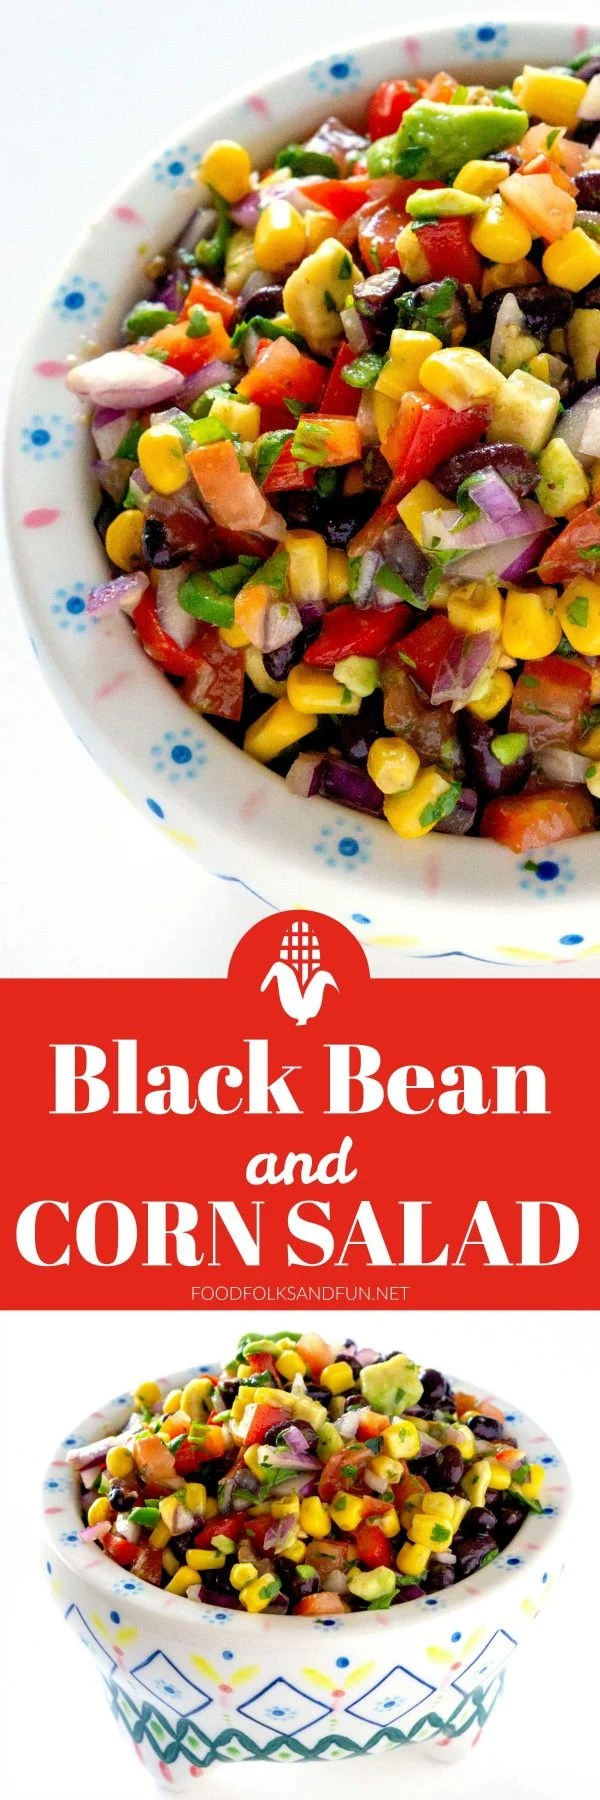 Black Bean and Corn Salad is a zesty side dish or appetizer that is packed with corn, black beans, tomatoes, red bell pepper, jalapeño, avocado, cilantro, and lime zest. #sidedish #appetizer  via @foodfolksandfun